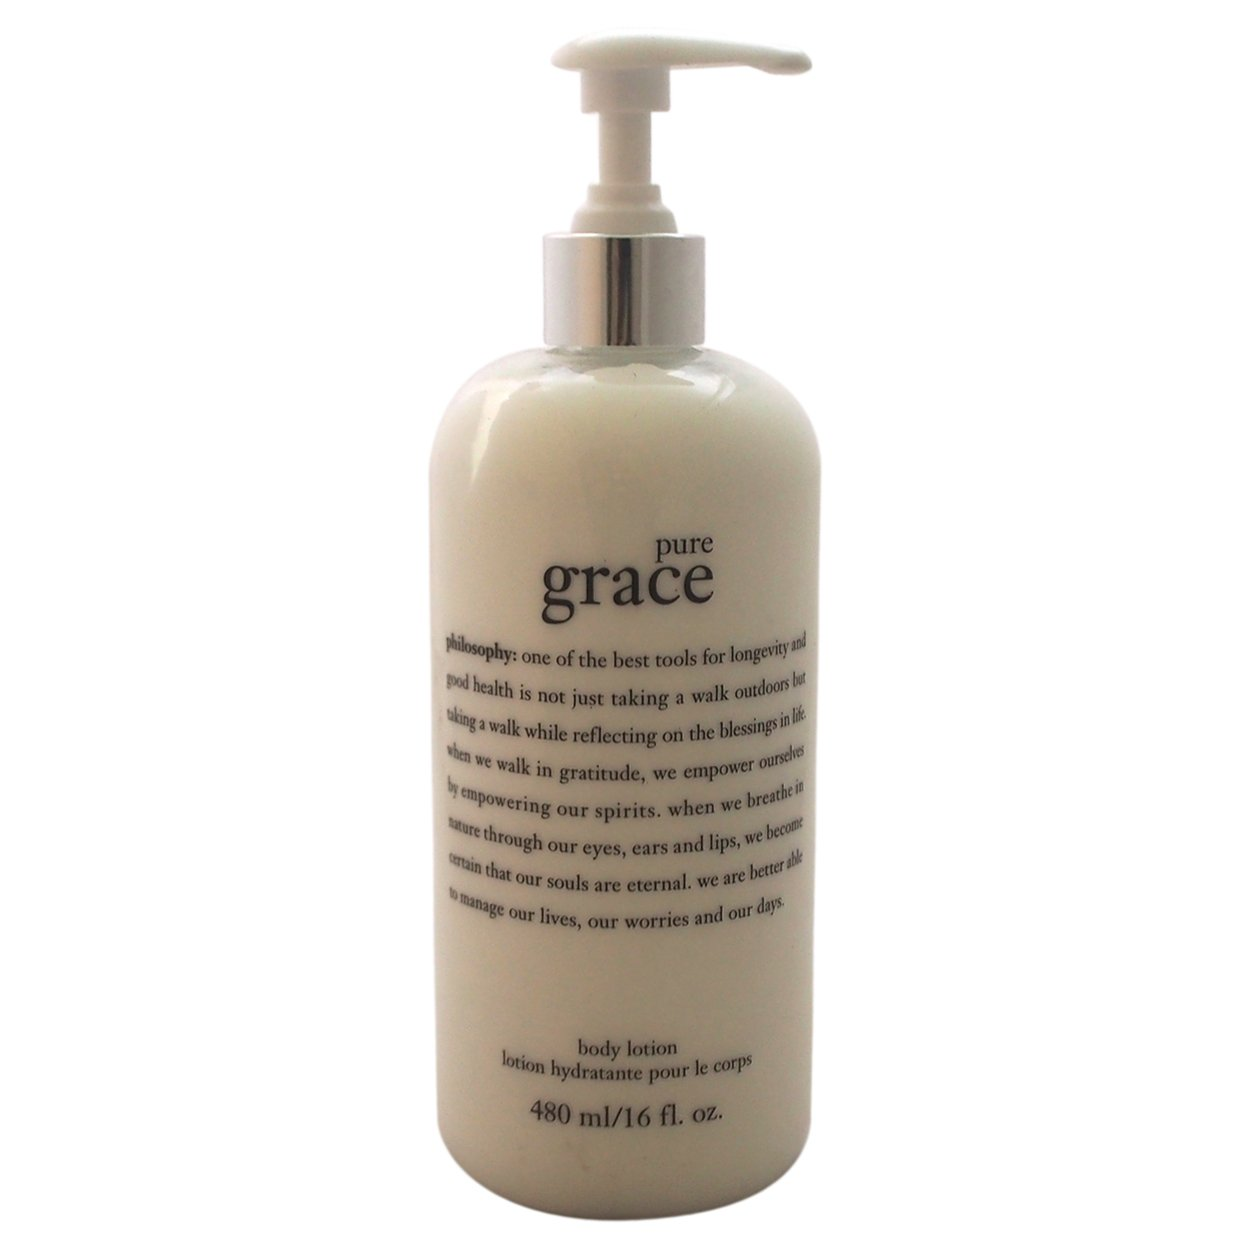 Pure Grace By Philosophy For Unisex 16 Oz Body Lotion